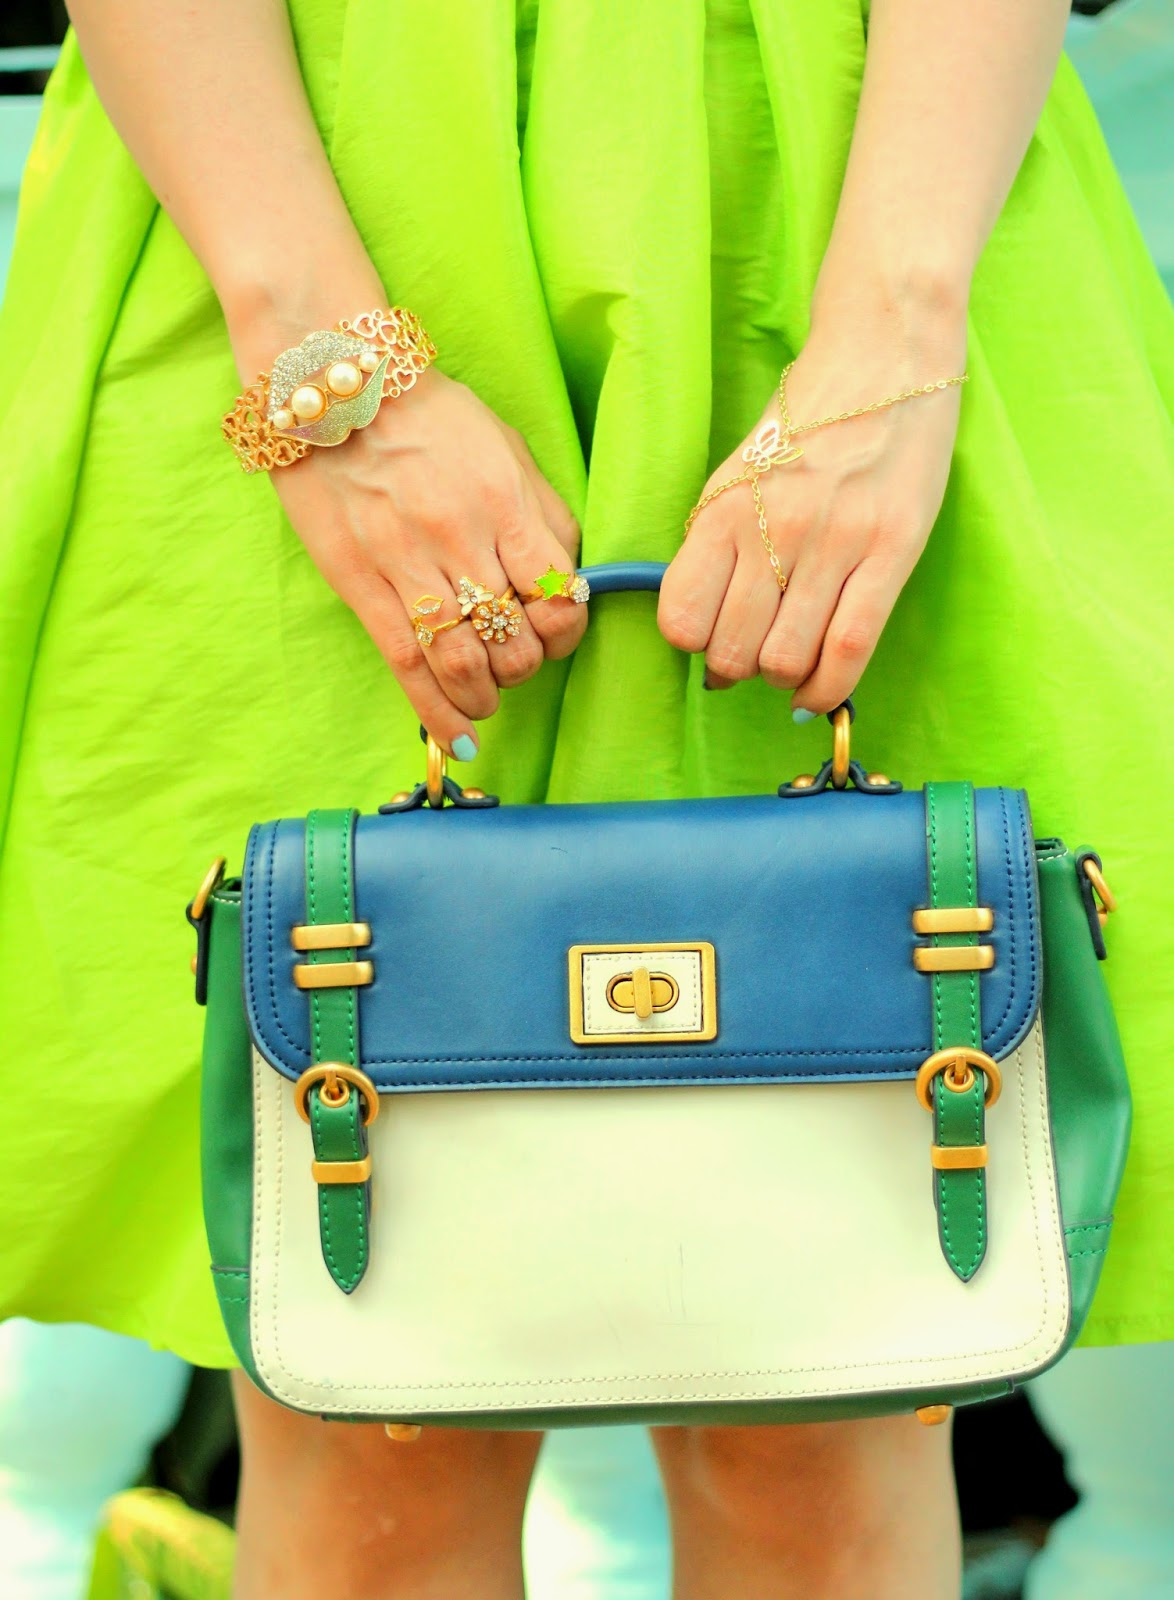 Charles & Keith Blue-Green Satchel Bag